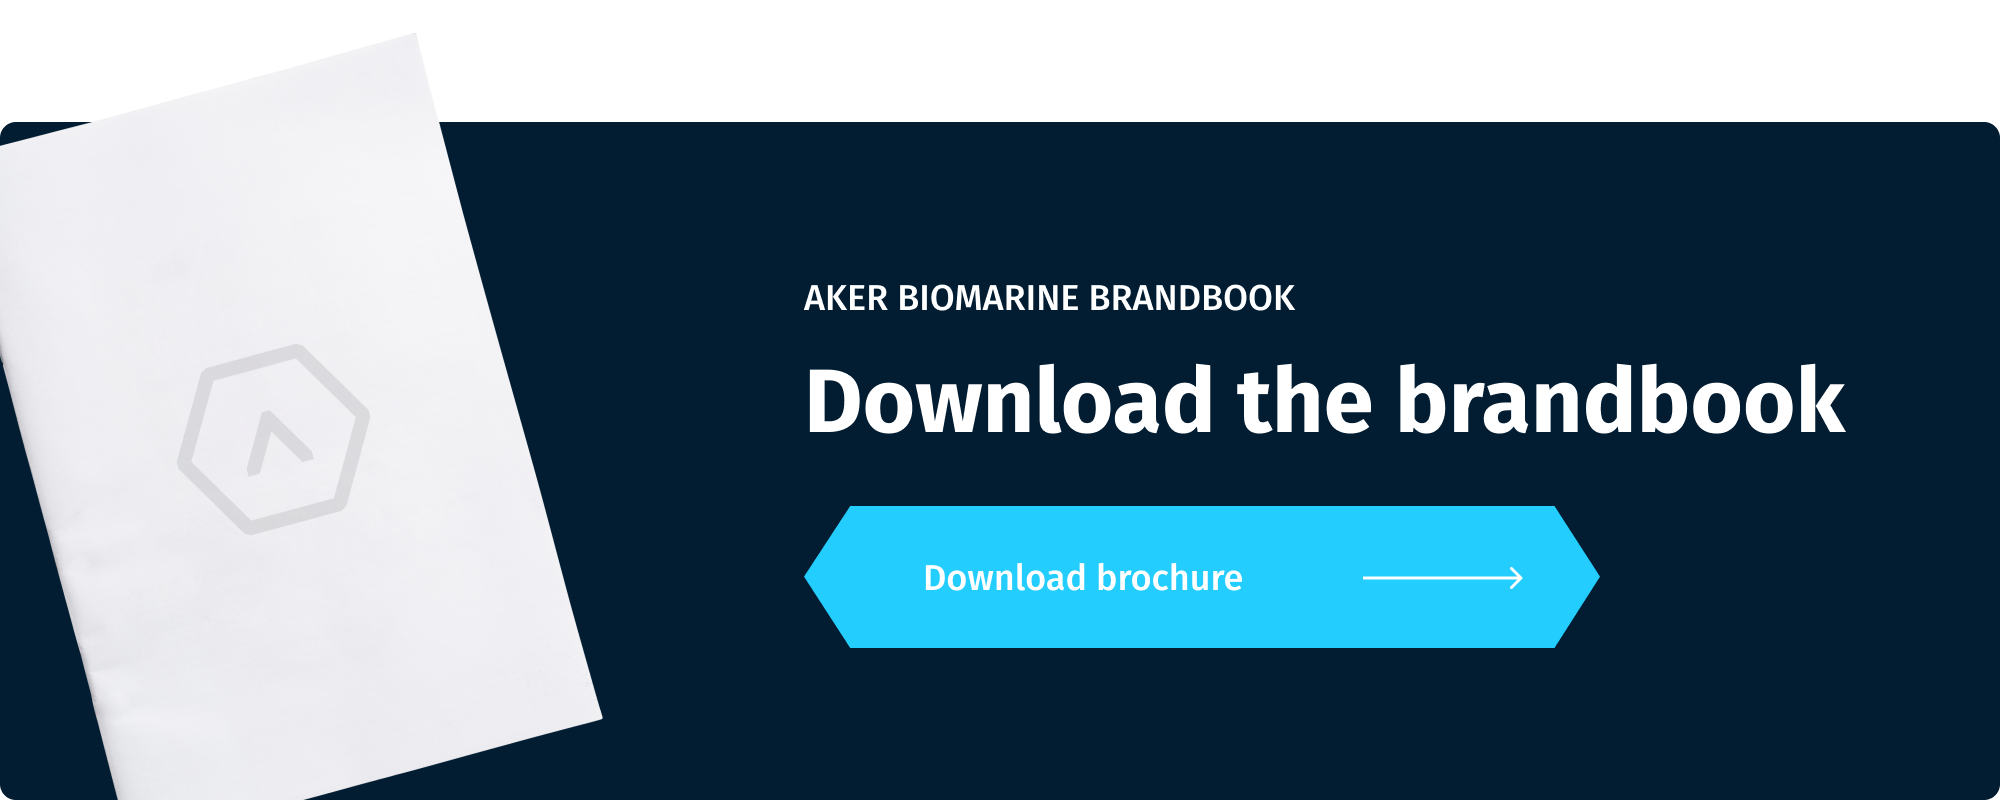 Aker Biomarine Brand Book